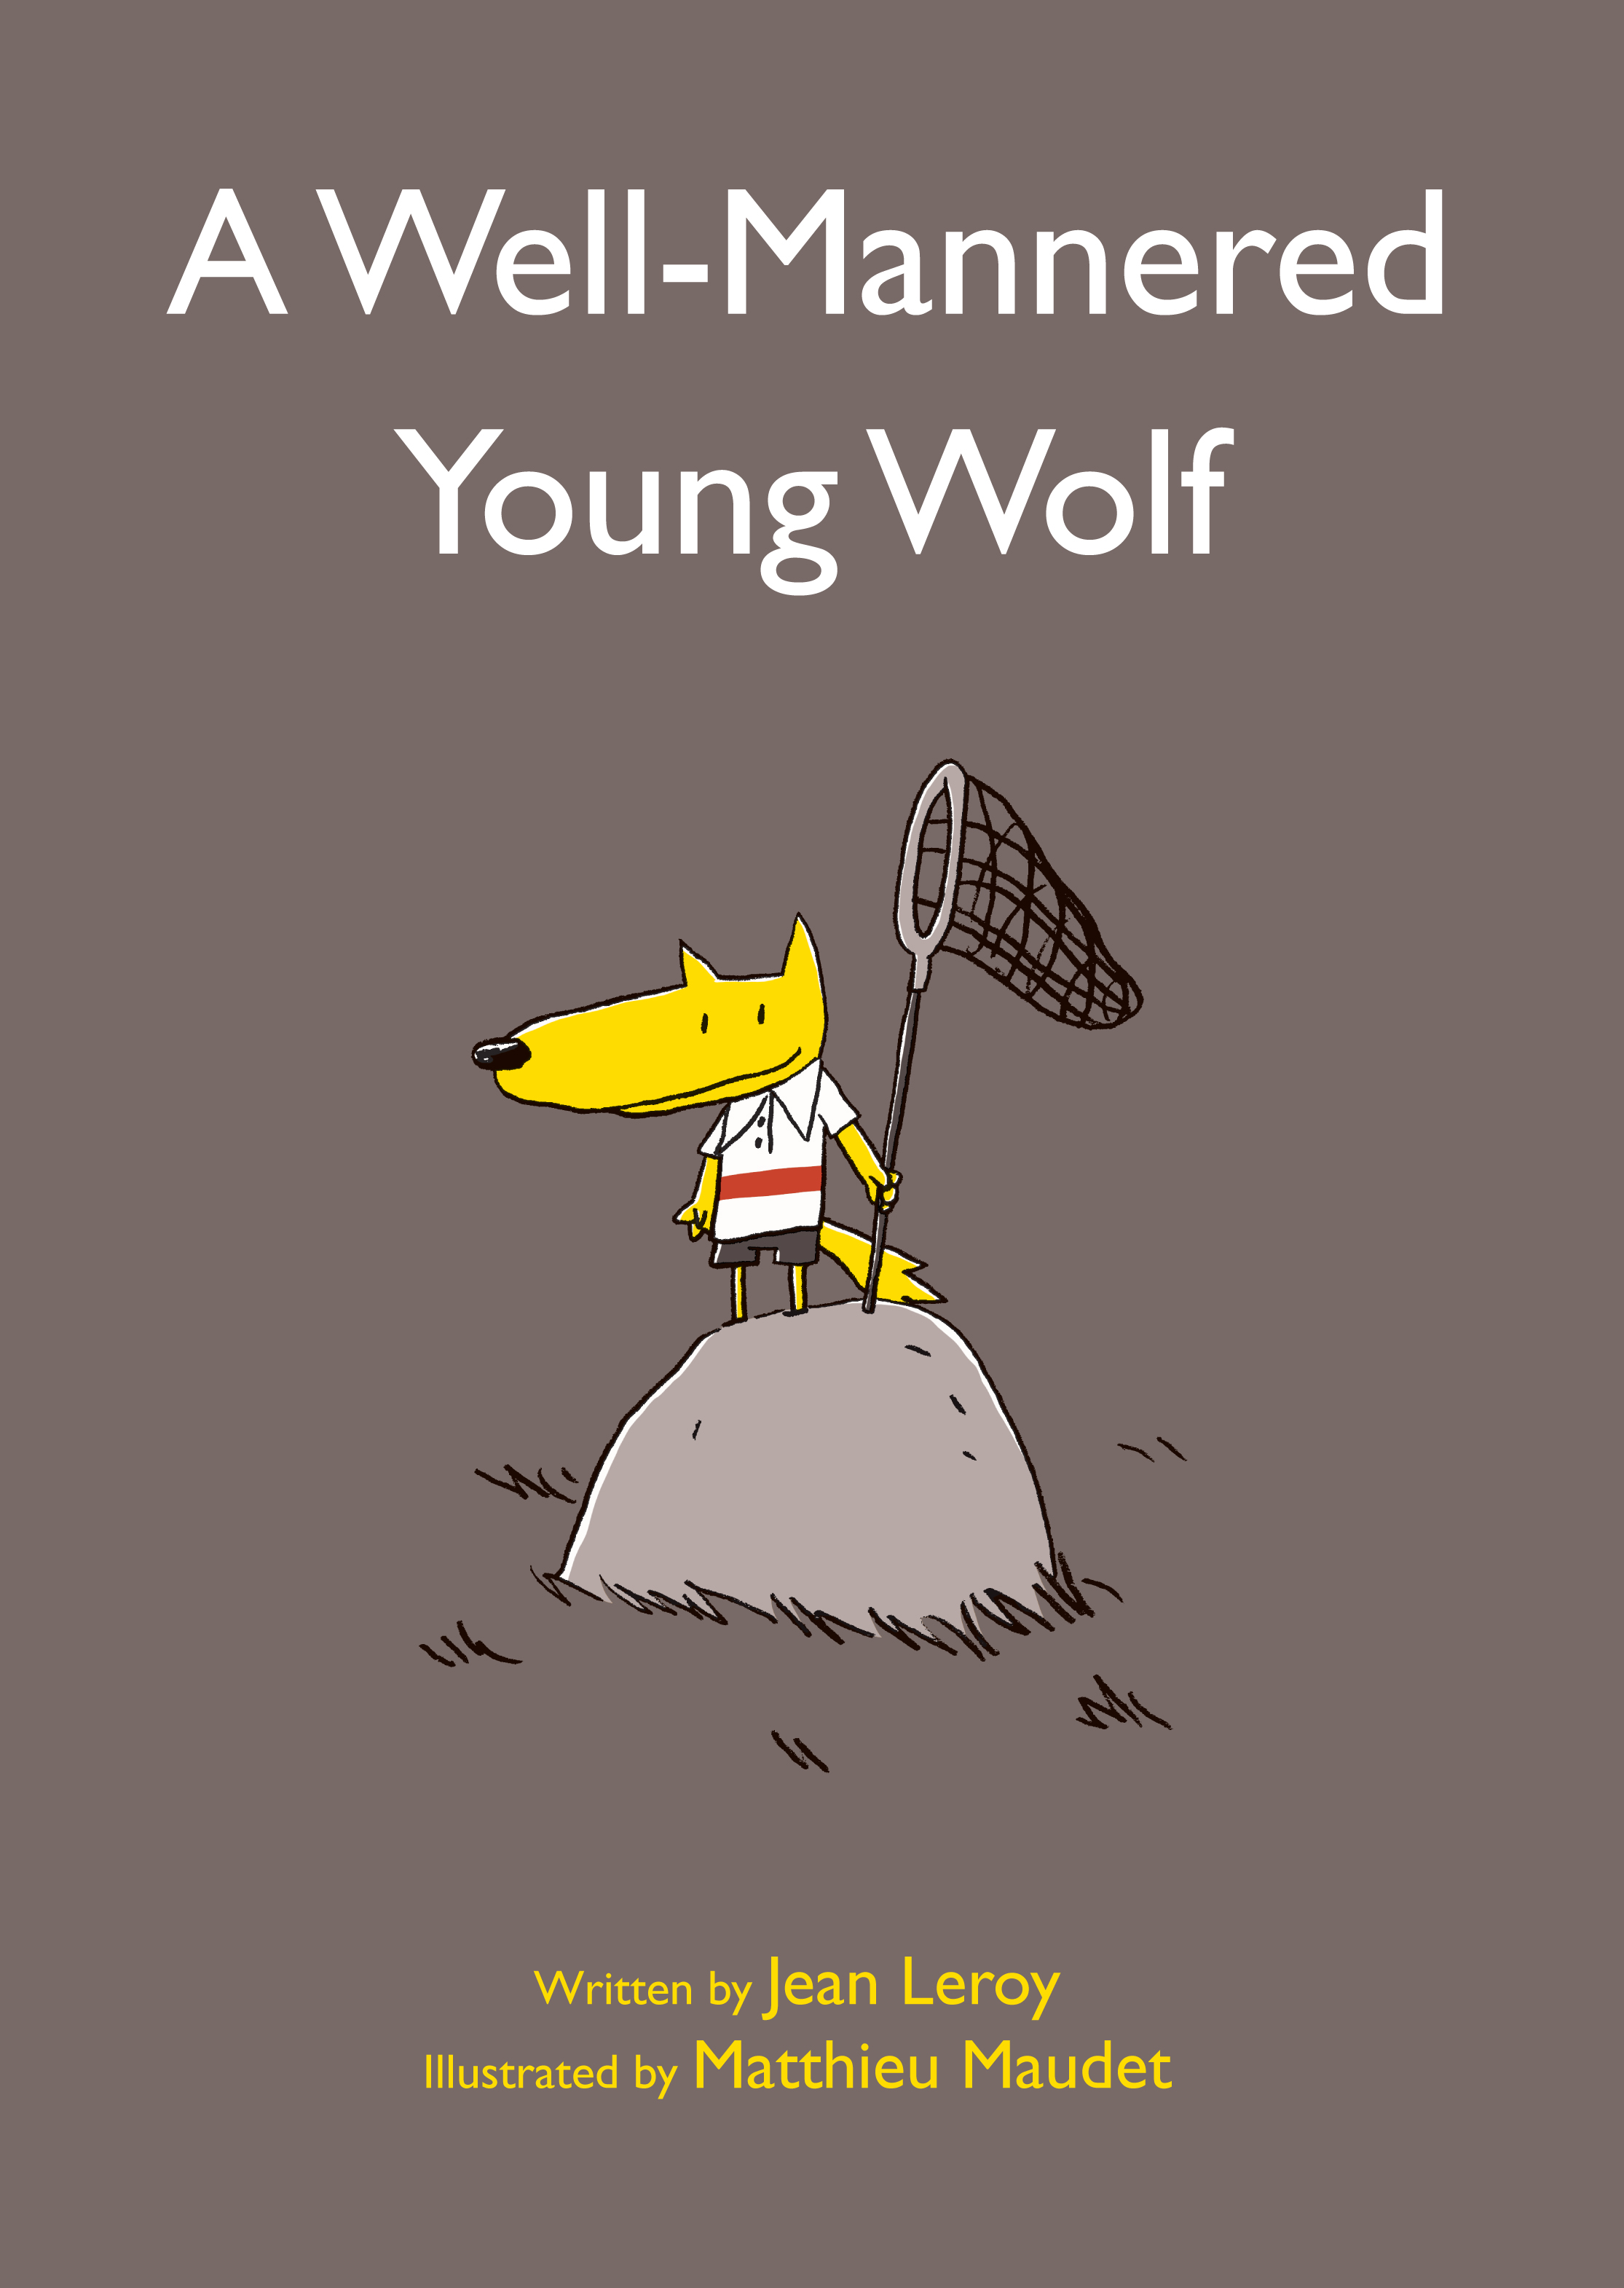 A Well-Mannered Young Wolf